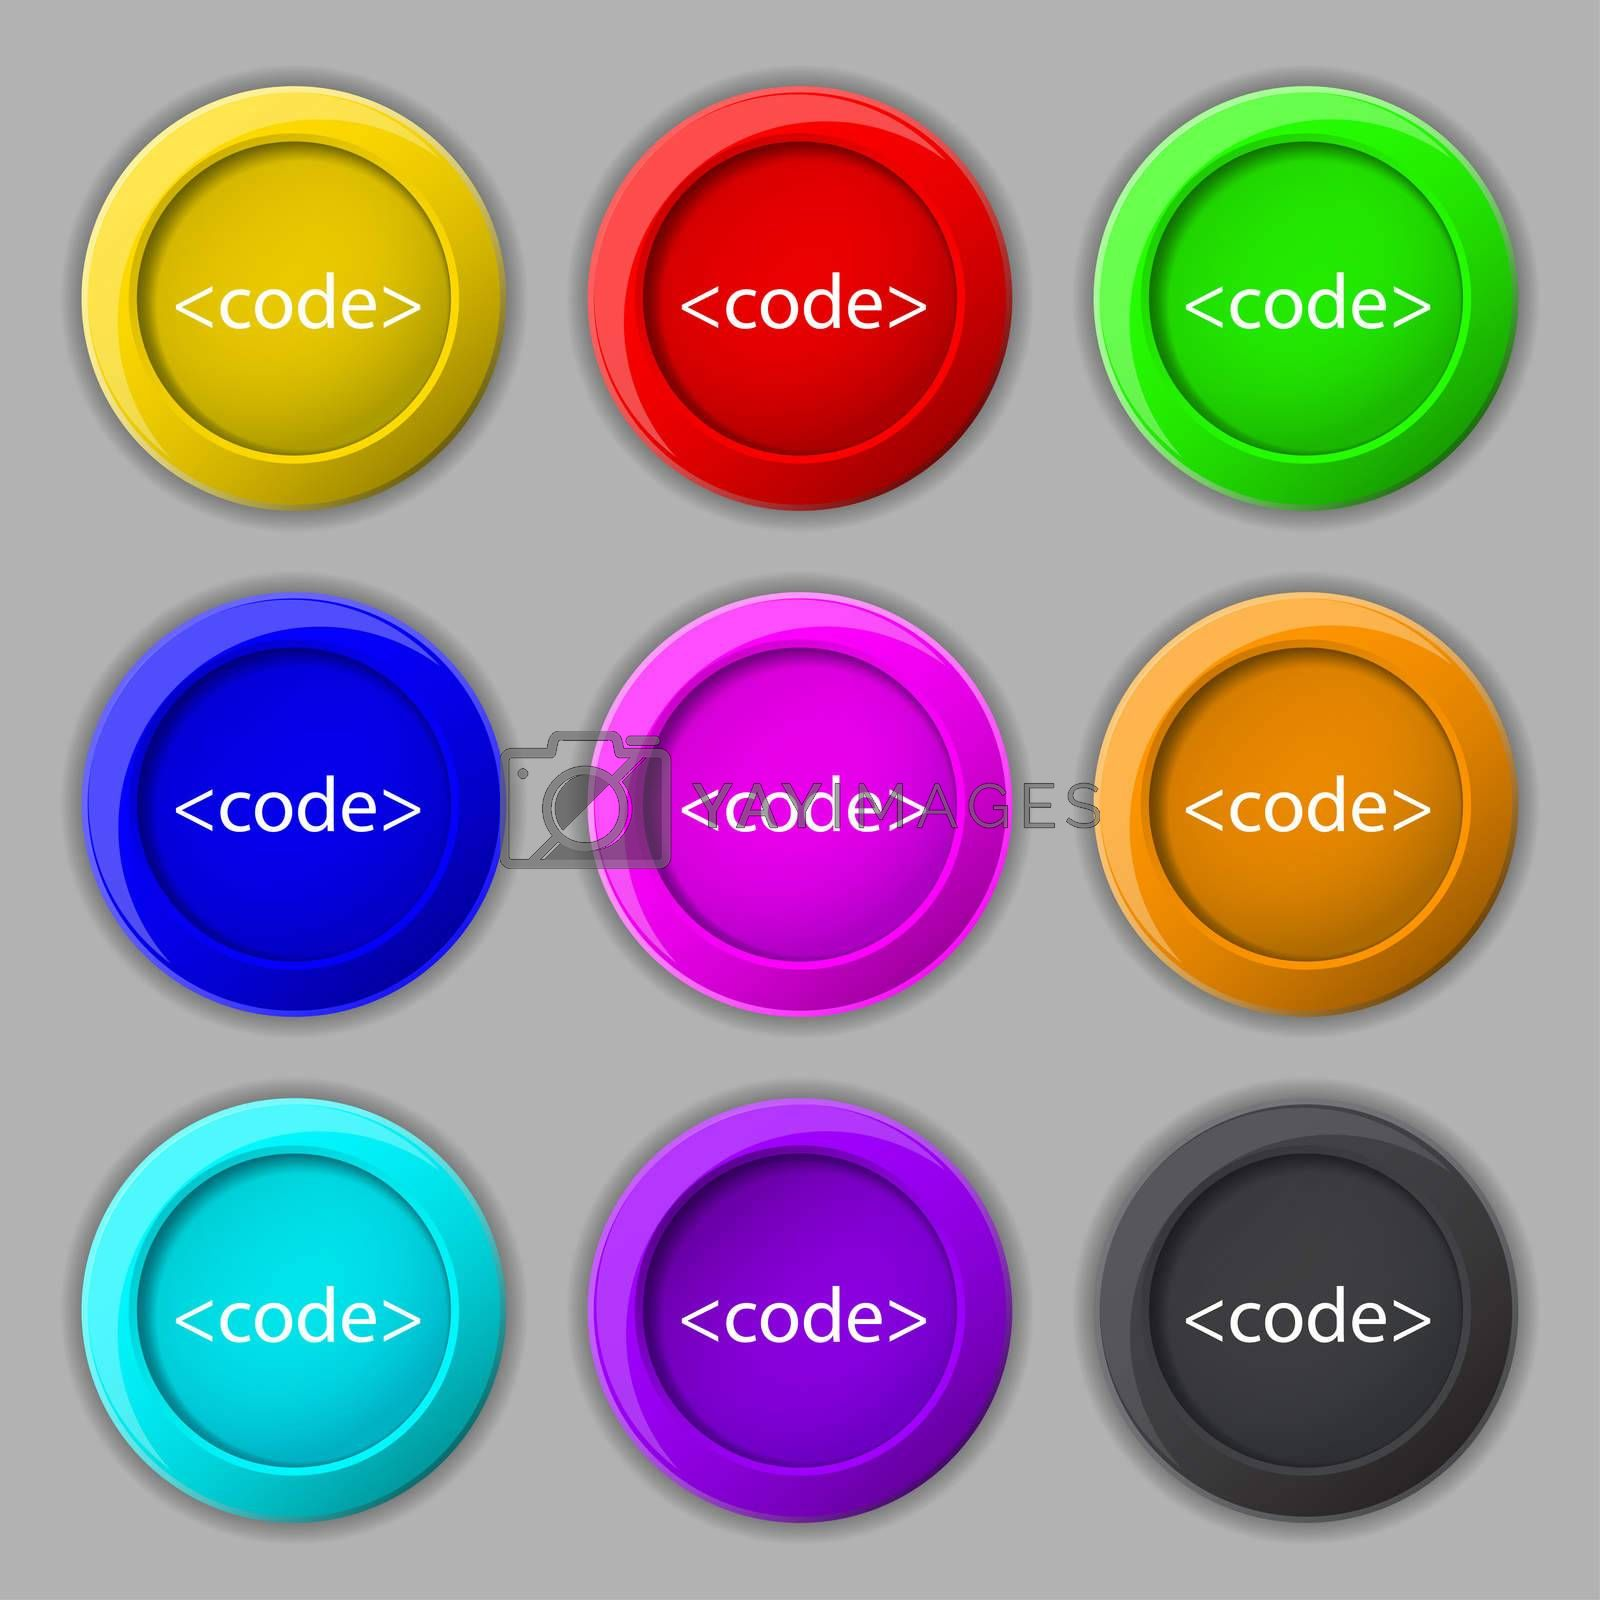 Code sign icon. Programming language symbol. Set of colored buttons.  by Serhii Lohvyniuk